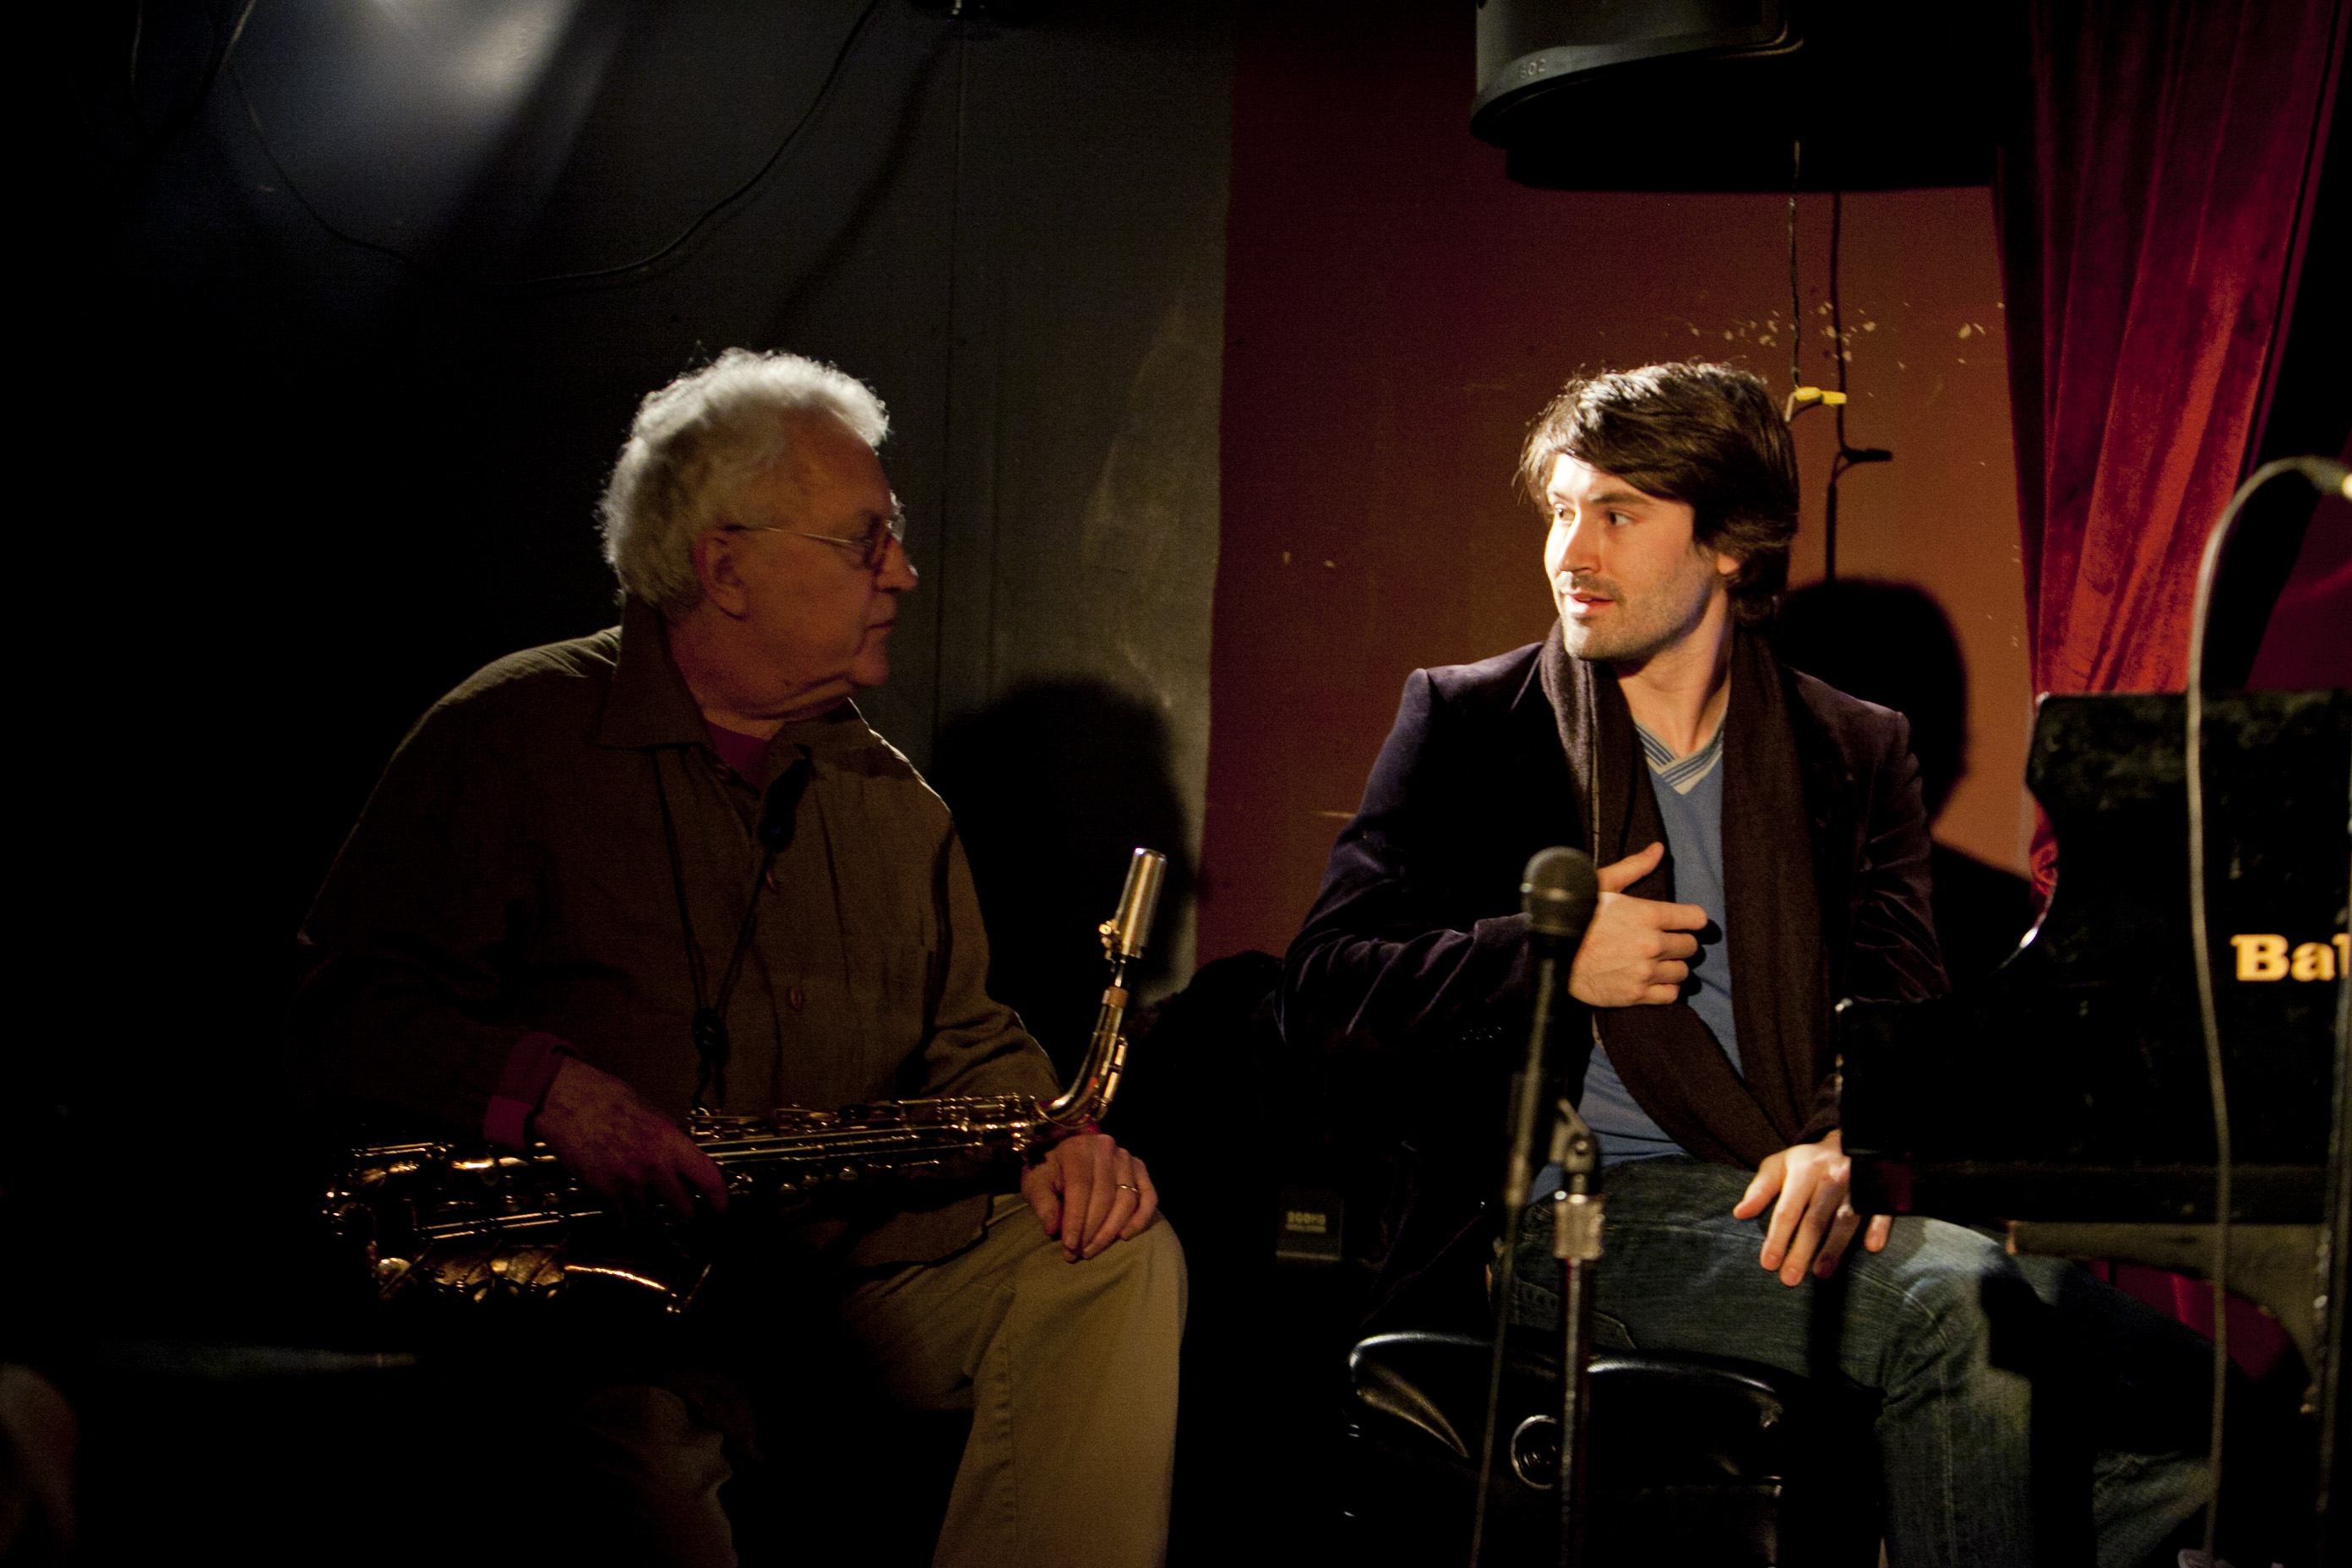 Dan Tepfer (right) brought frequent duet partner Lee Konitz to the Zinc Bar for a series of improvisations. They were backed by the Harlem String Quartet, which executed scores composed on-the-spot by Tepfer.